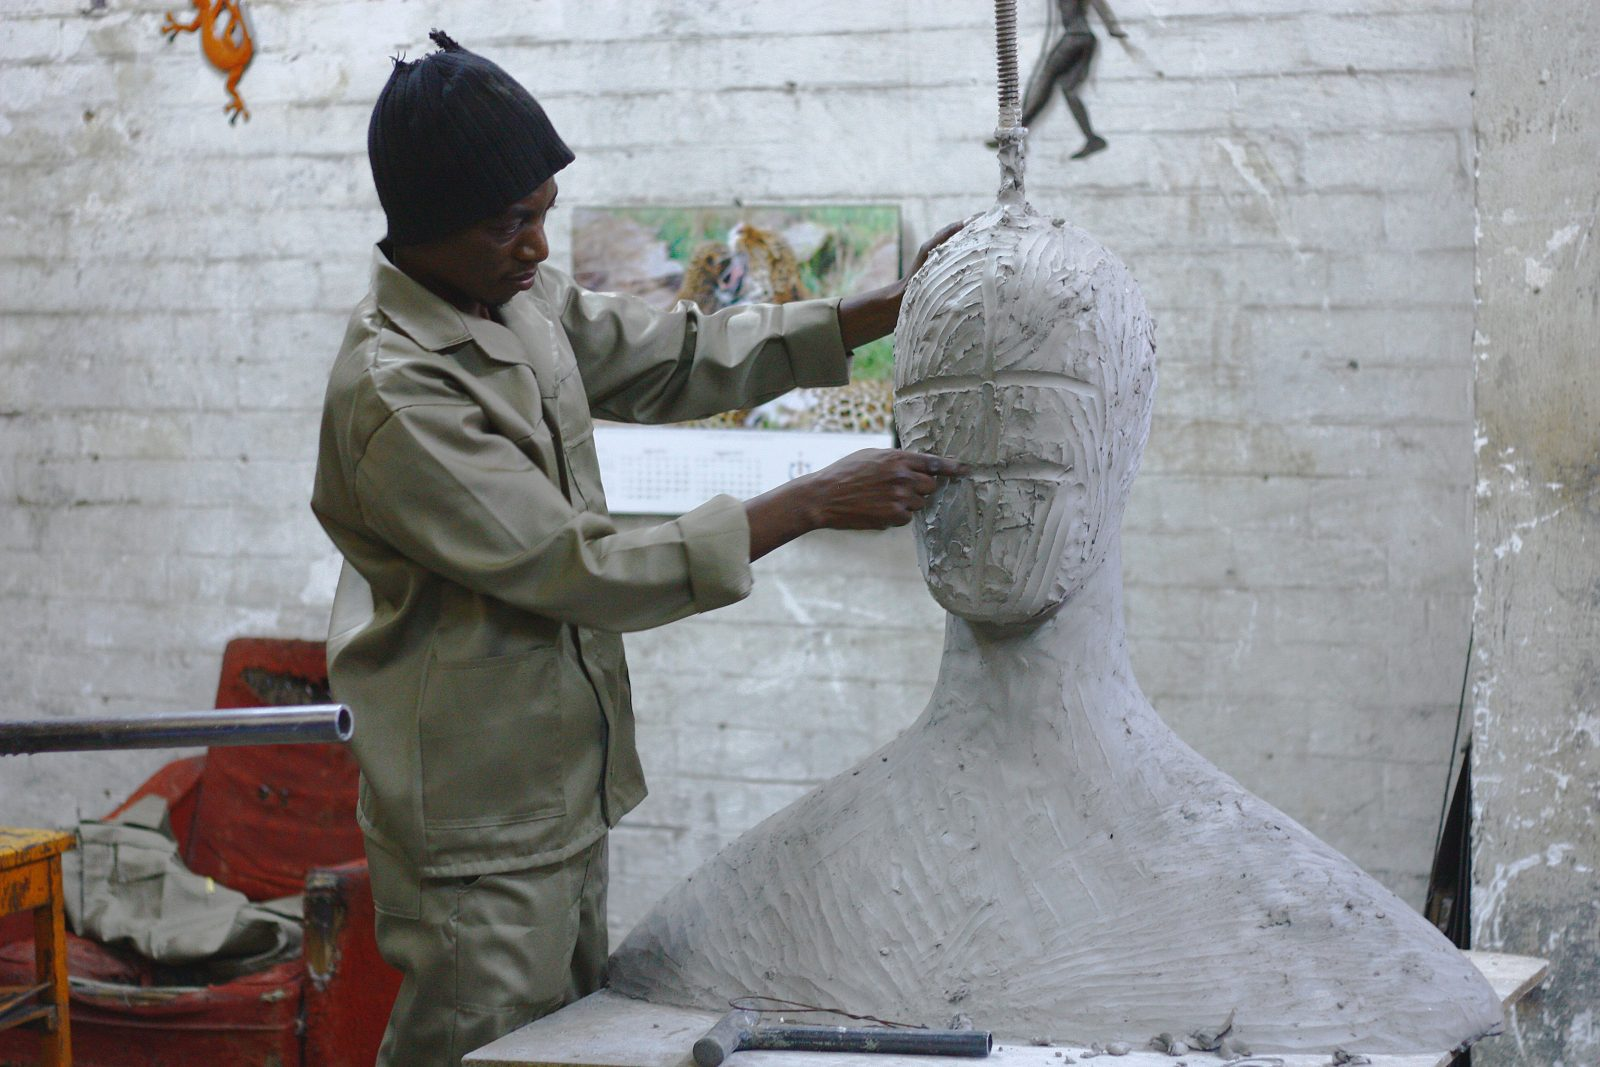 Sculpter working on a clay sculpture